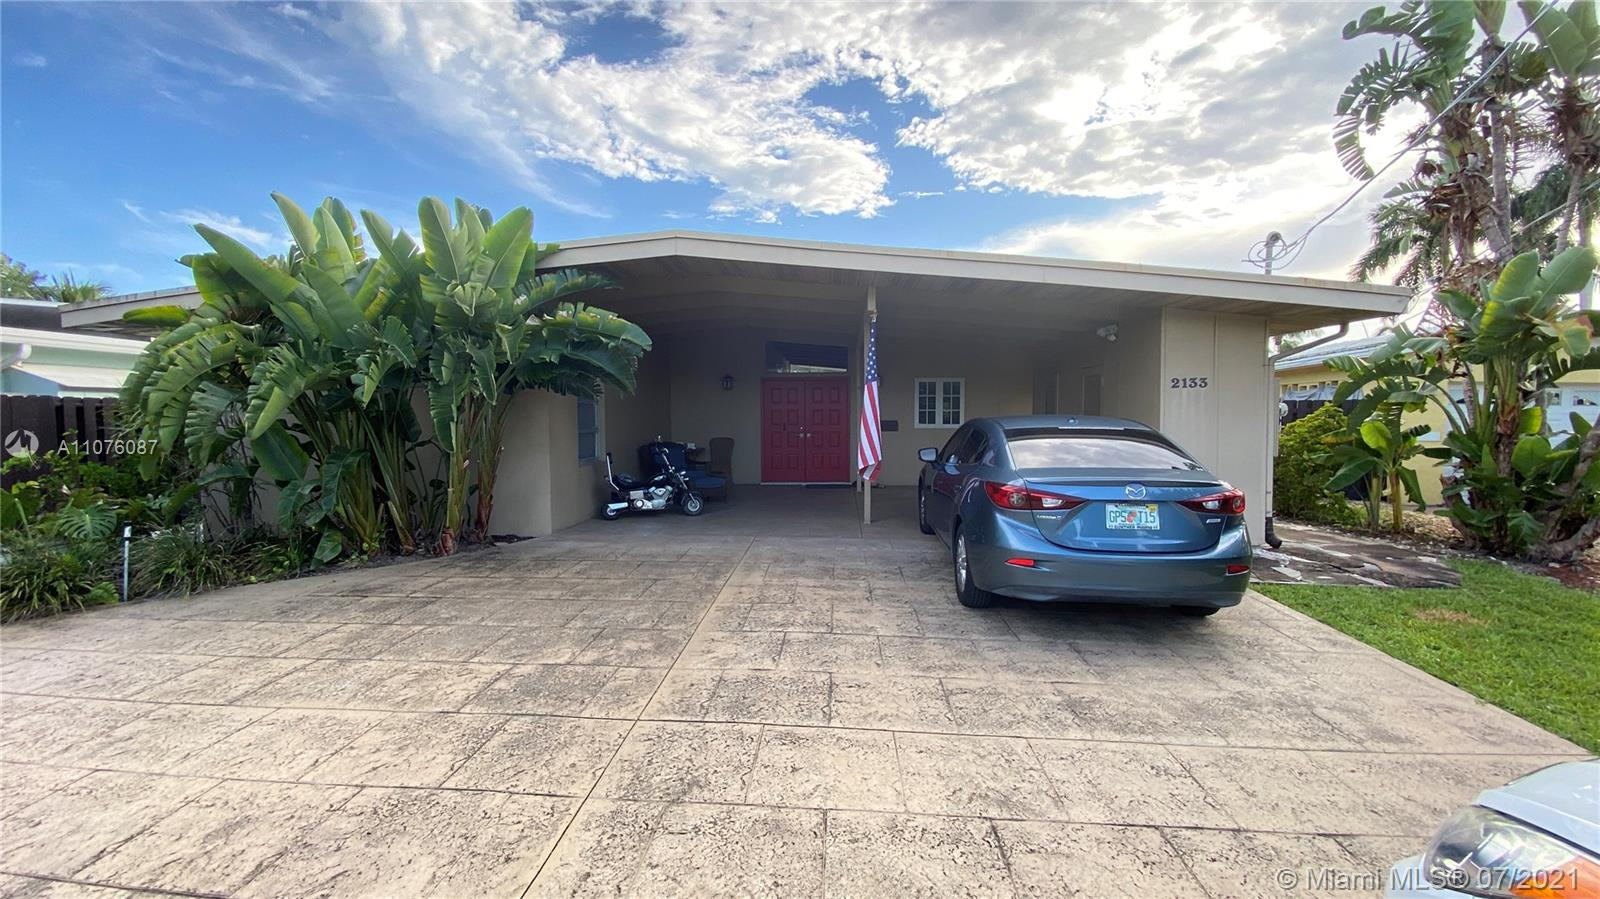 Coral Point, 2133 NE 20th Ave, Wilton Manors, Florida 33305